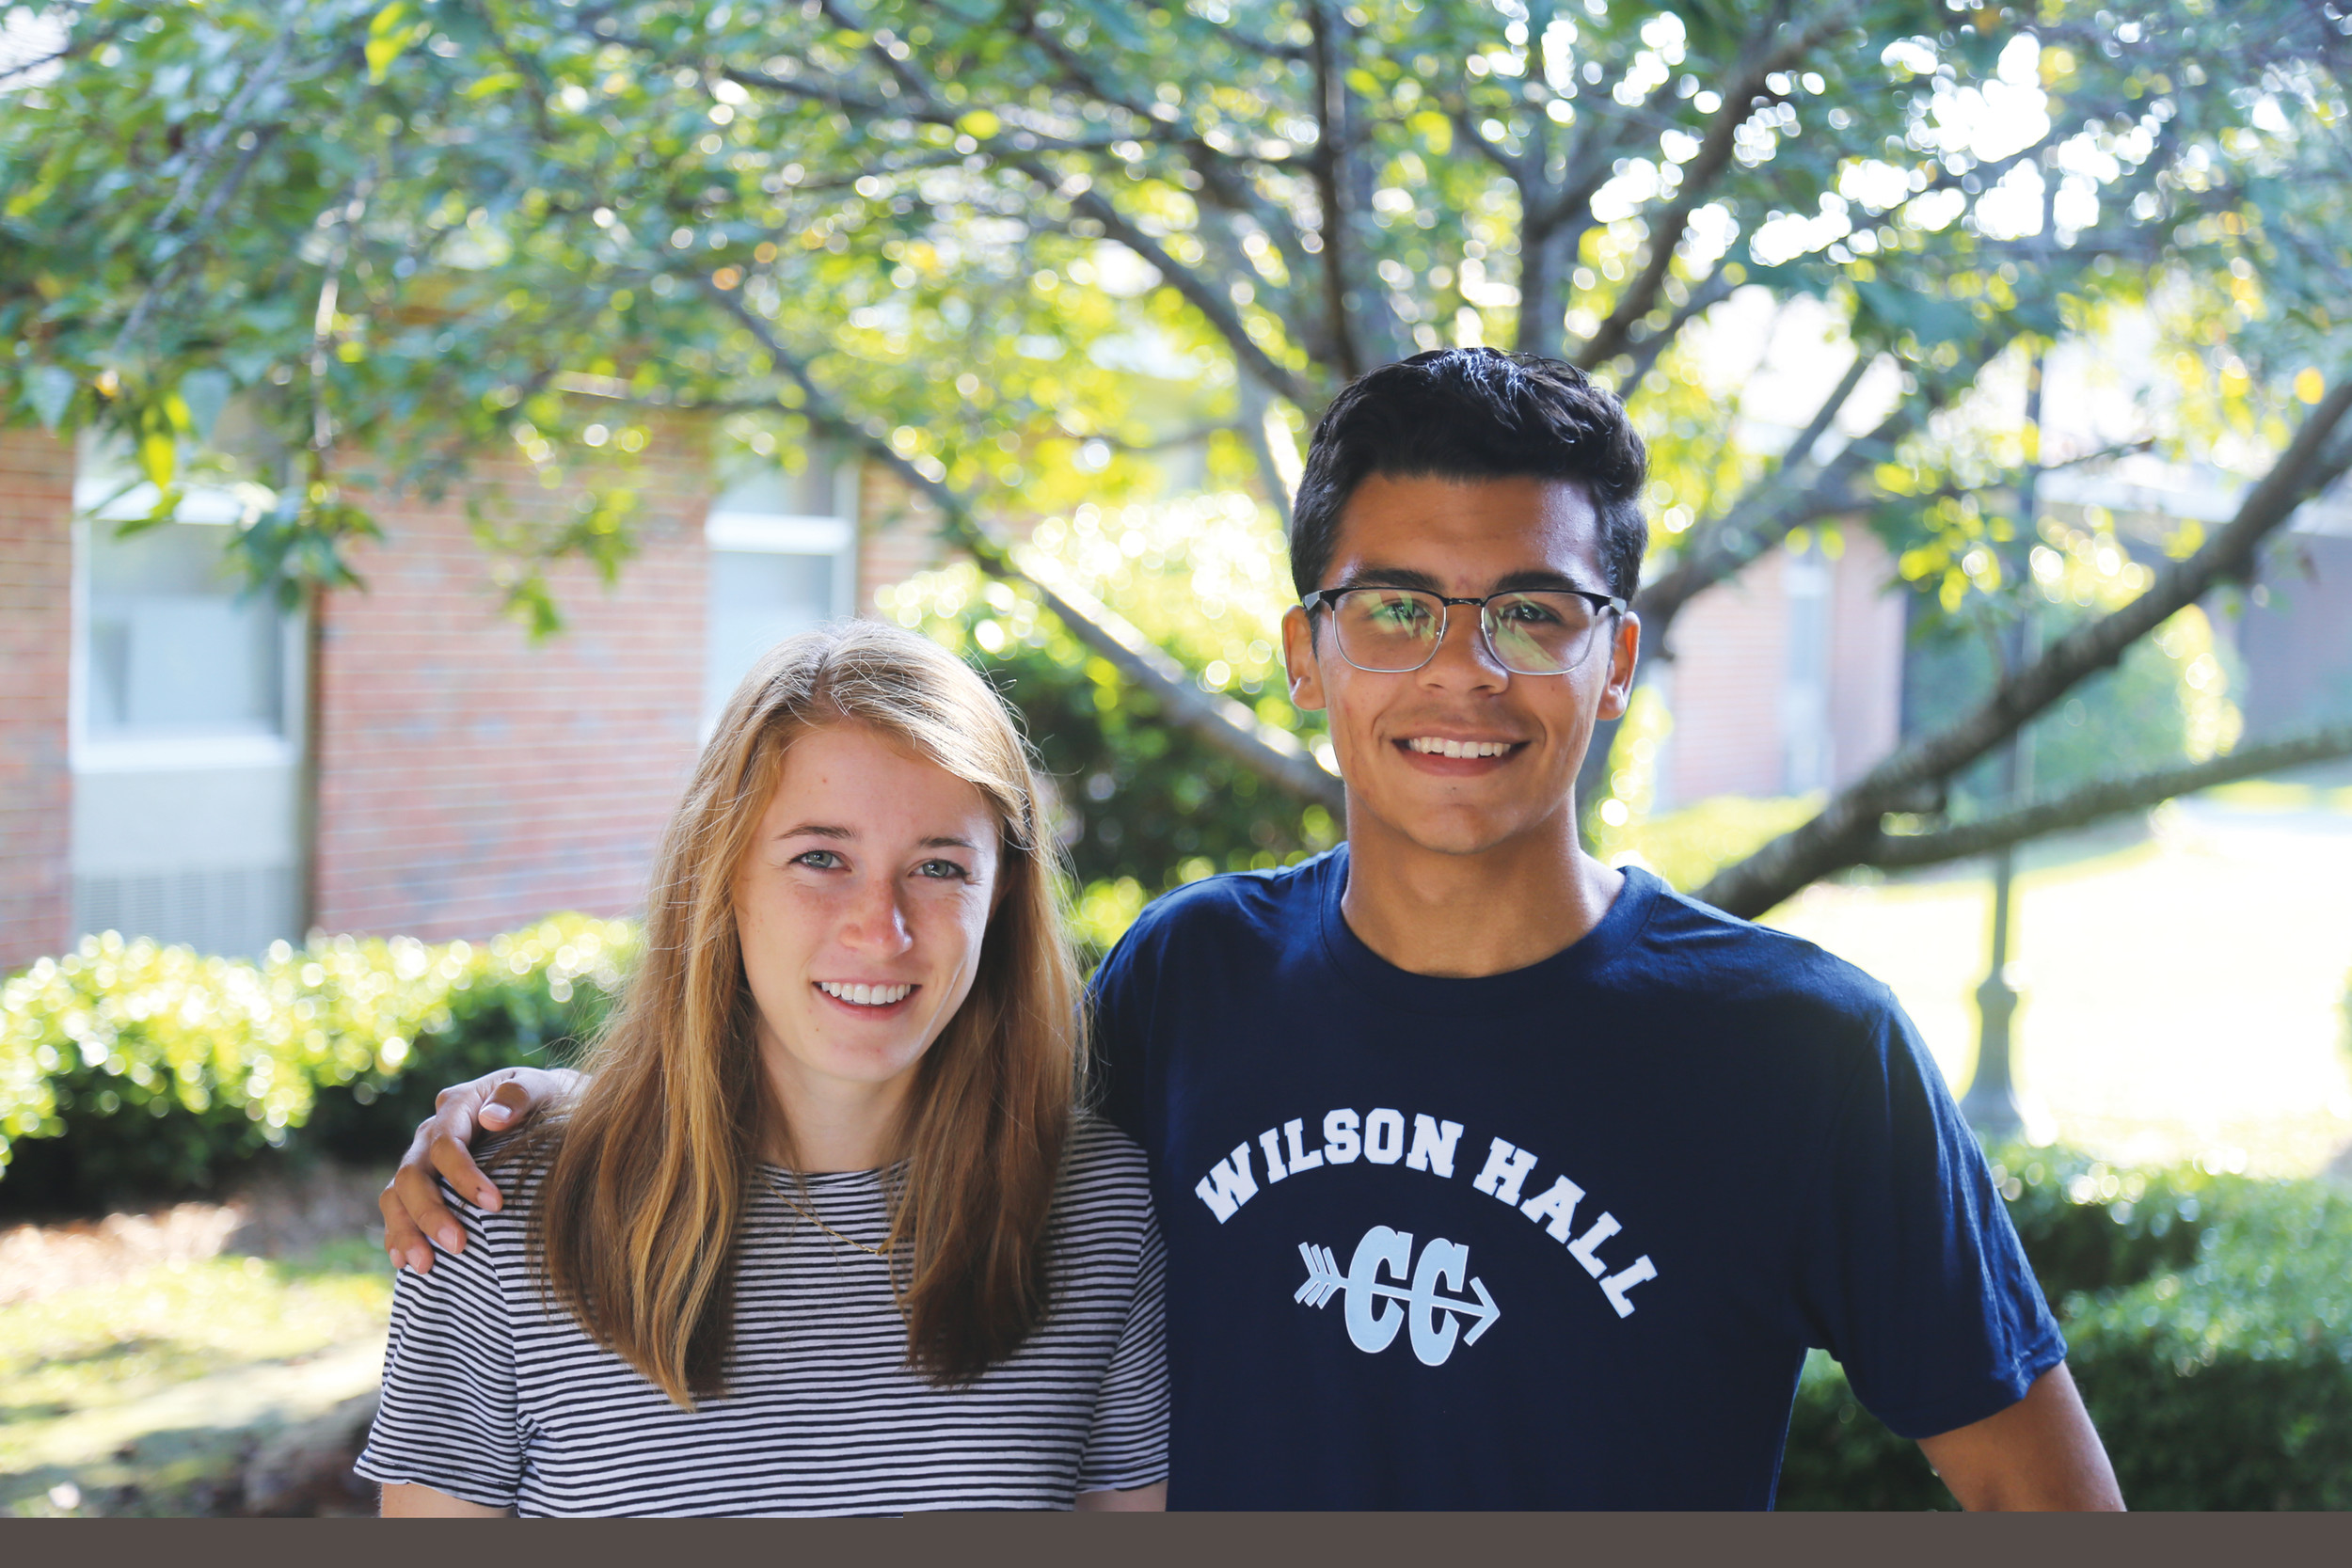 Wilson Hall seniors Kirsten Fisher, left, and Matthew Tavarez were recently selected as National Merit Scholarship semifinalists.